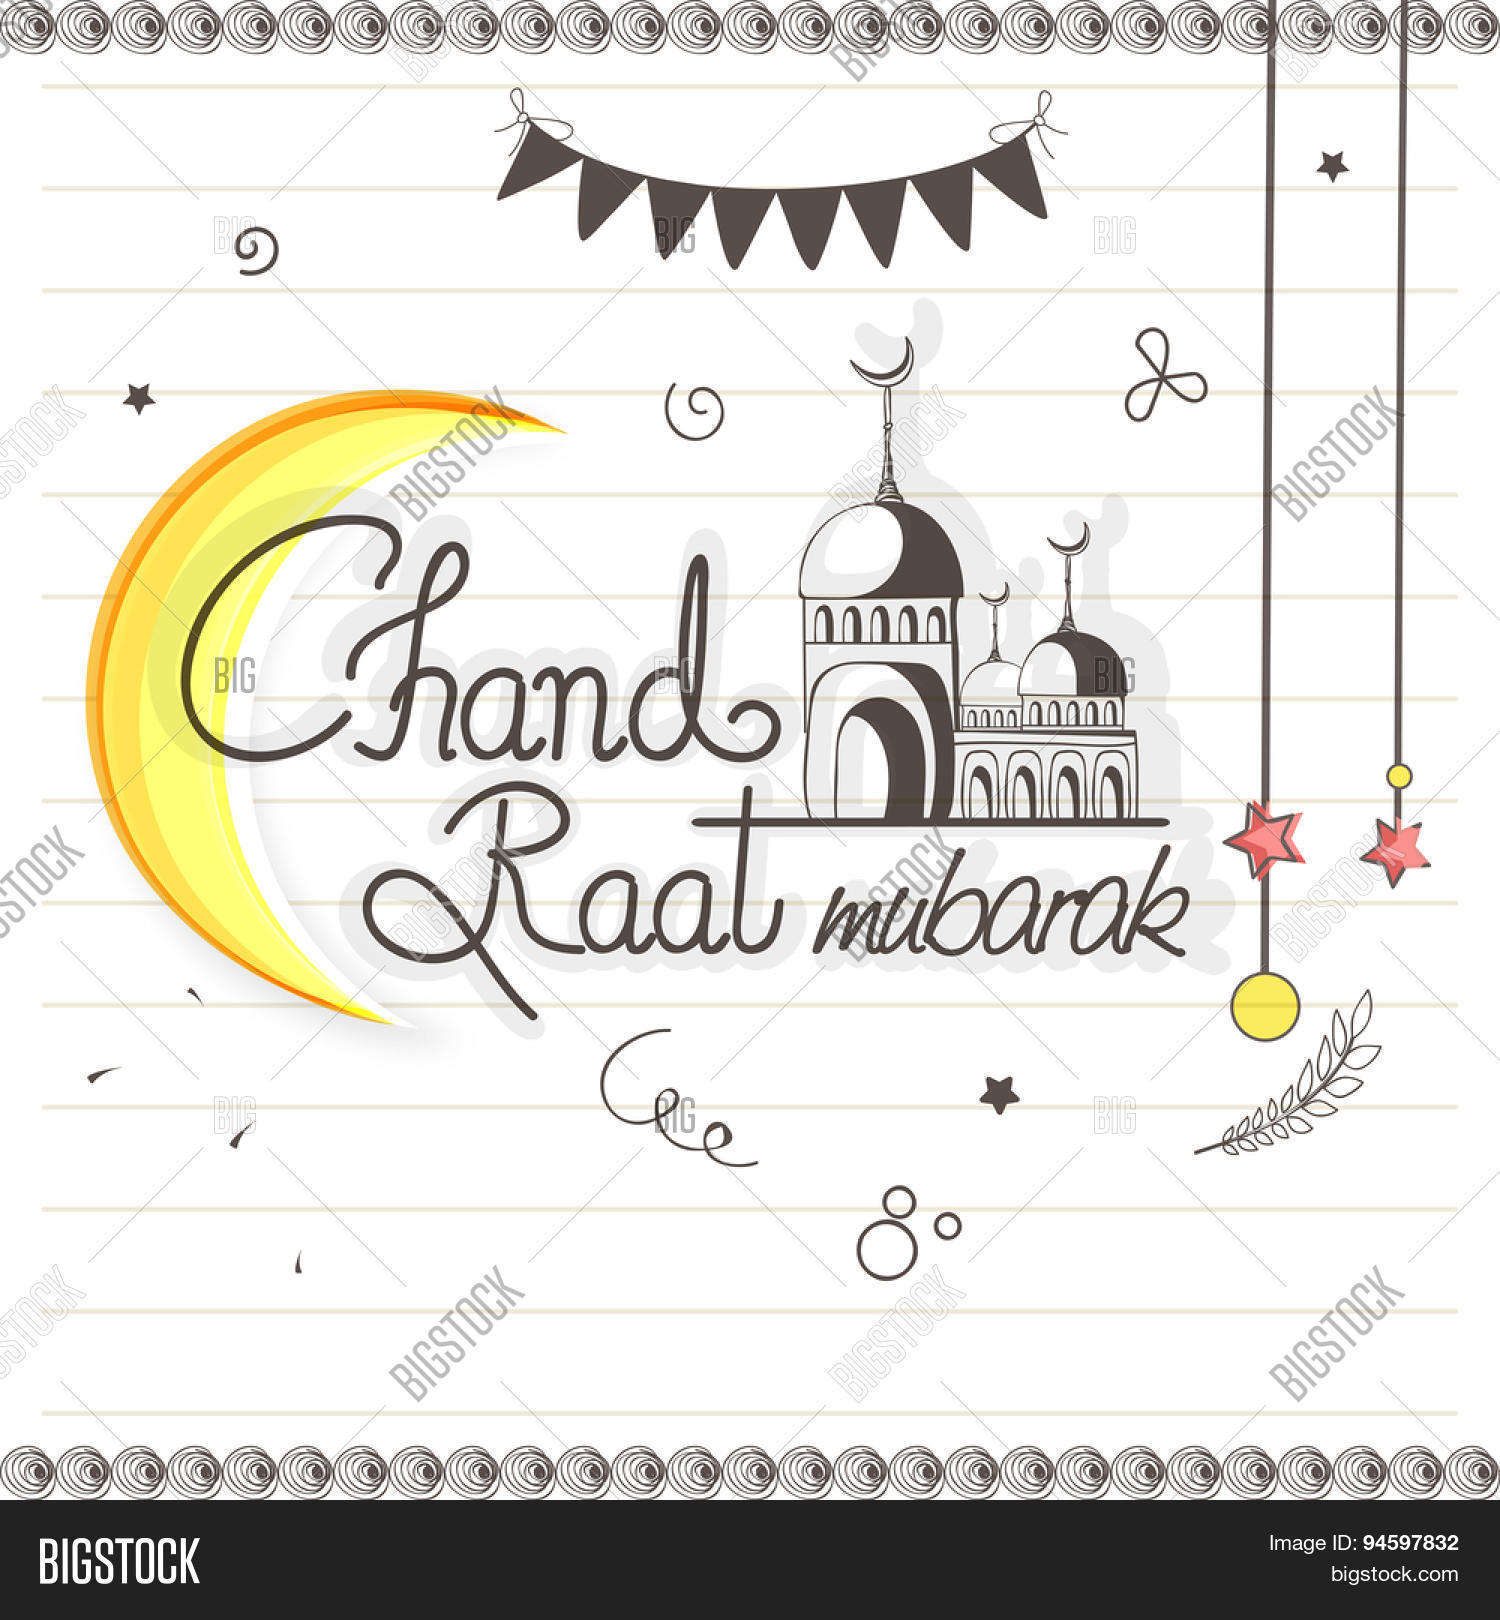 Stylish greeting card vector photo free trial bigstock stylish greeting card design with crescent moon and mosque on notebook paper background for islamic famous m4hsunfo